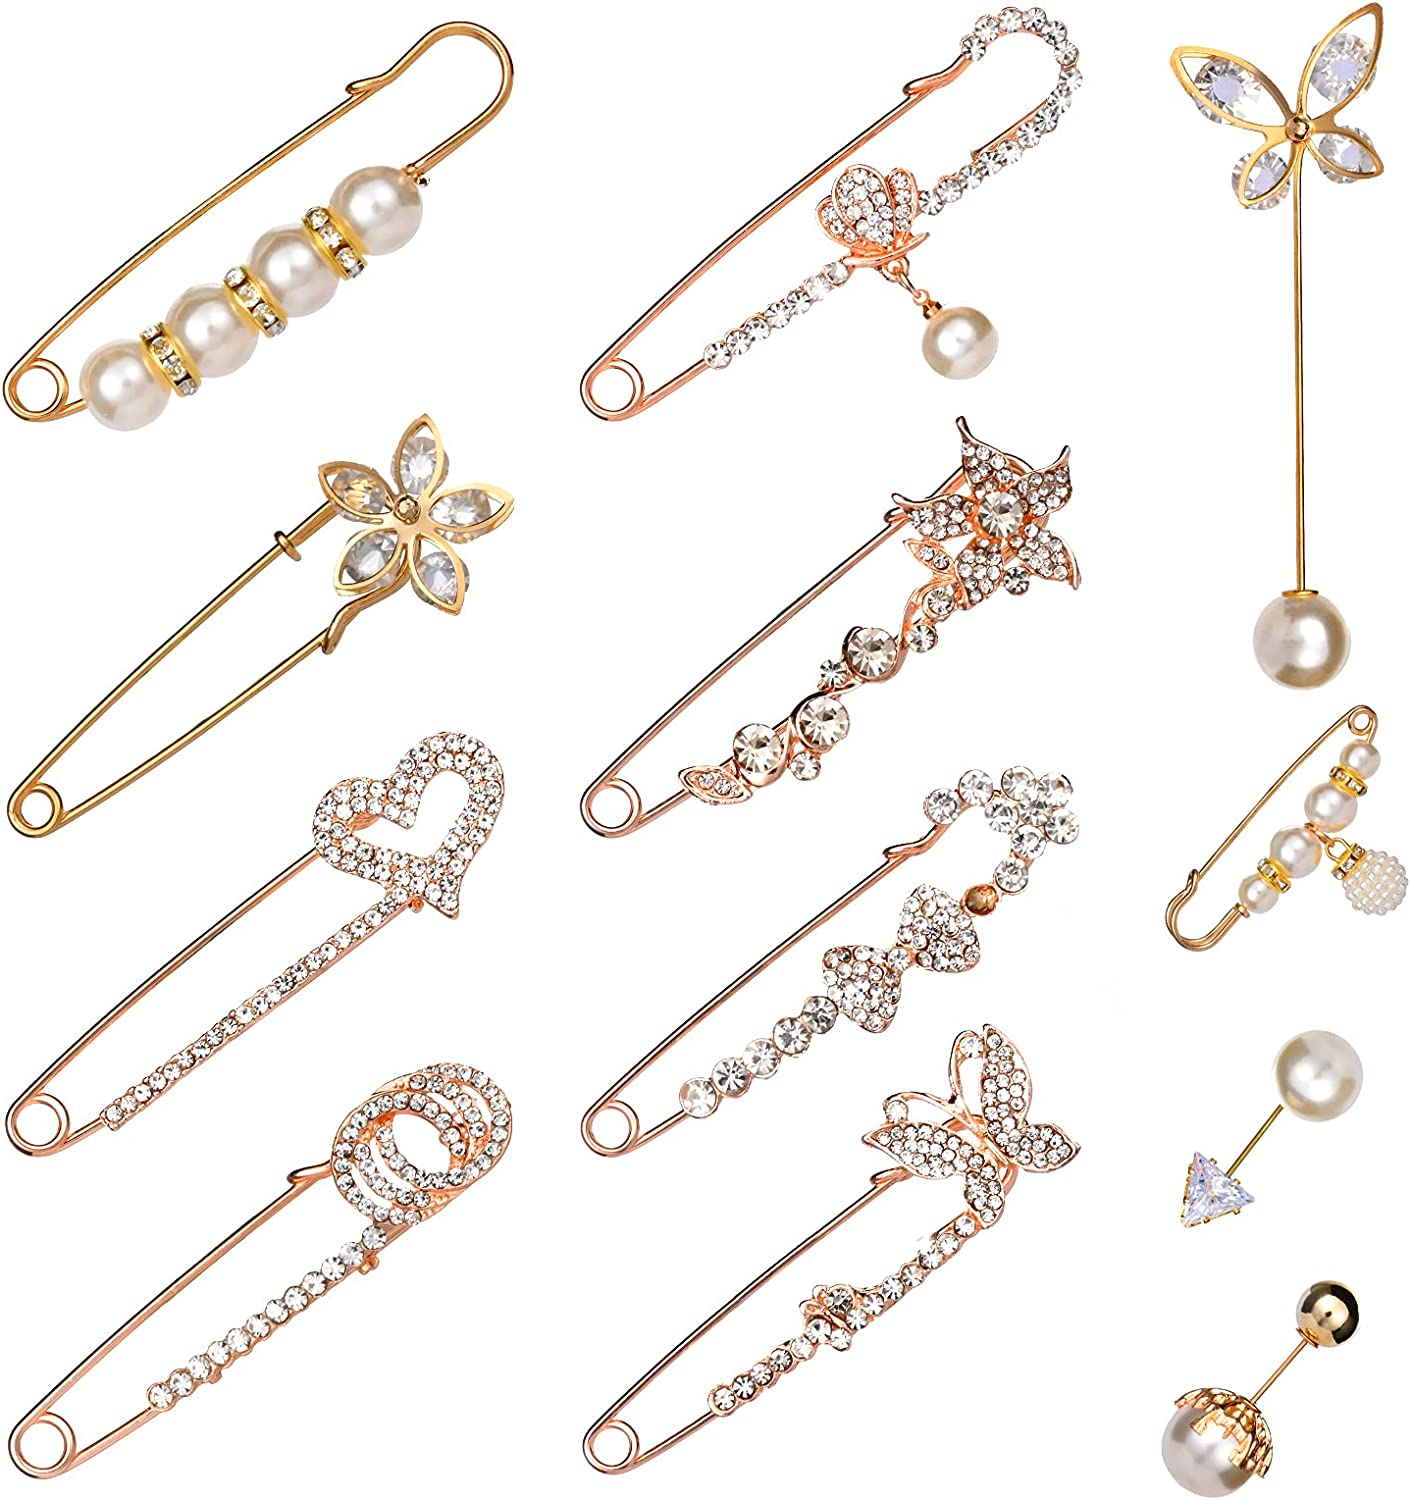 RUMIA Faux Pearl Brooch Pins, 12 Pieces Women Sweater Shawl Pins Set Girls Fashion Clothing Decoration